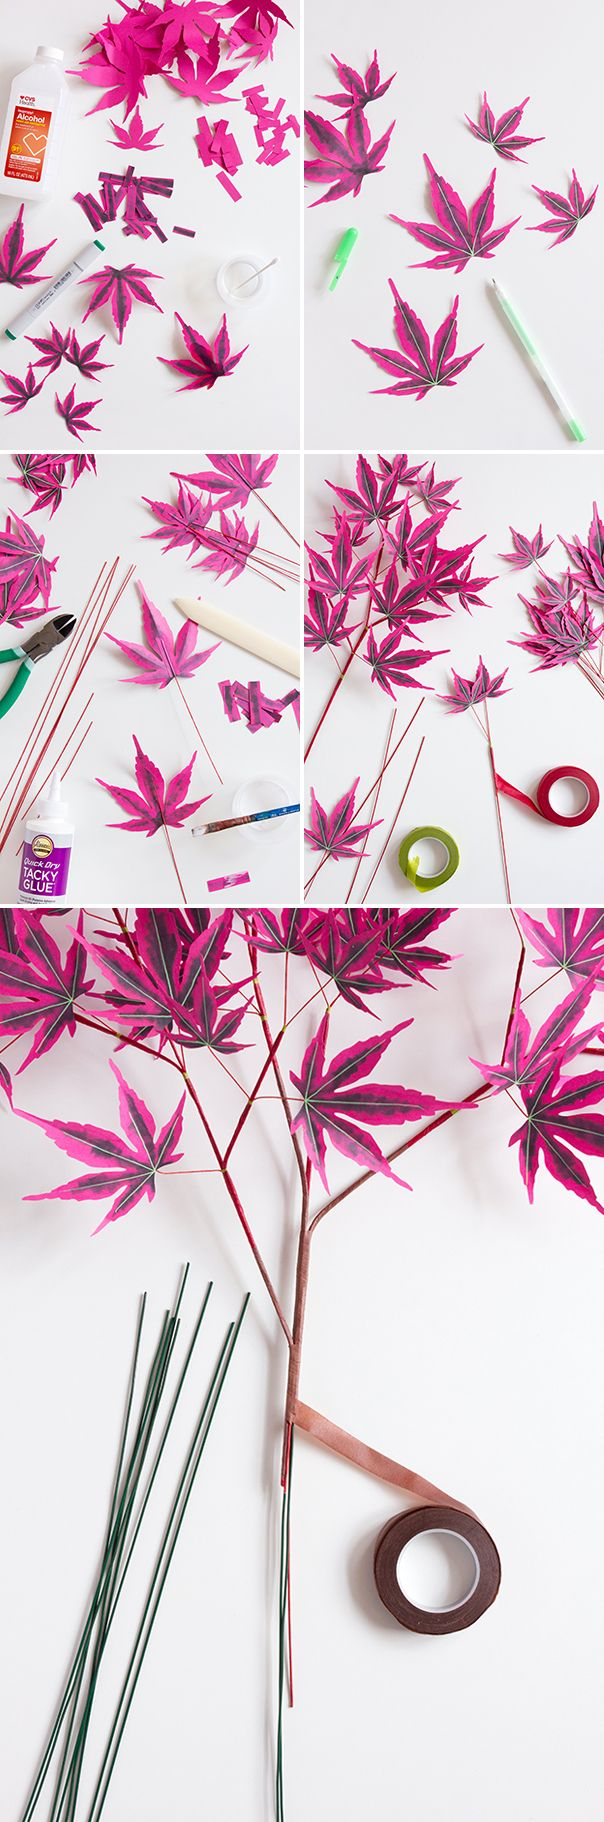 DIY Japanese Maple tree #japanesemaple